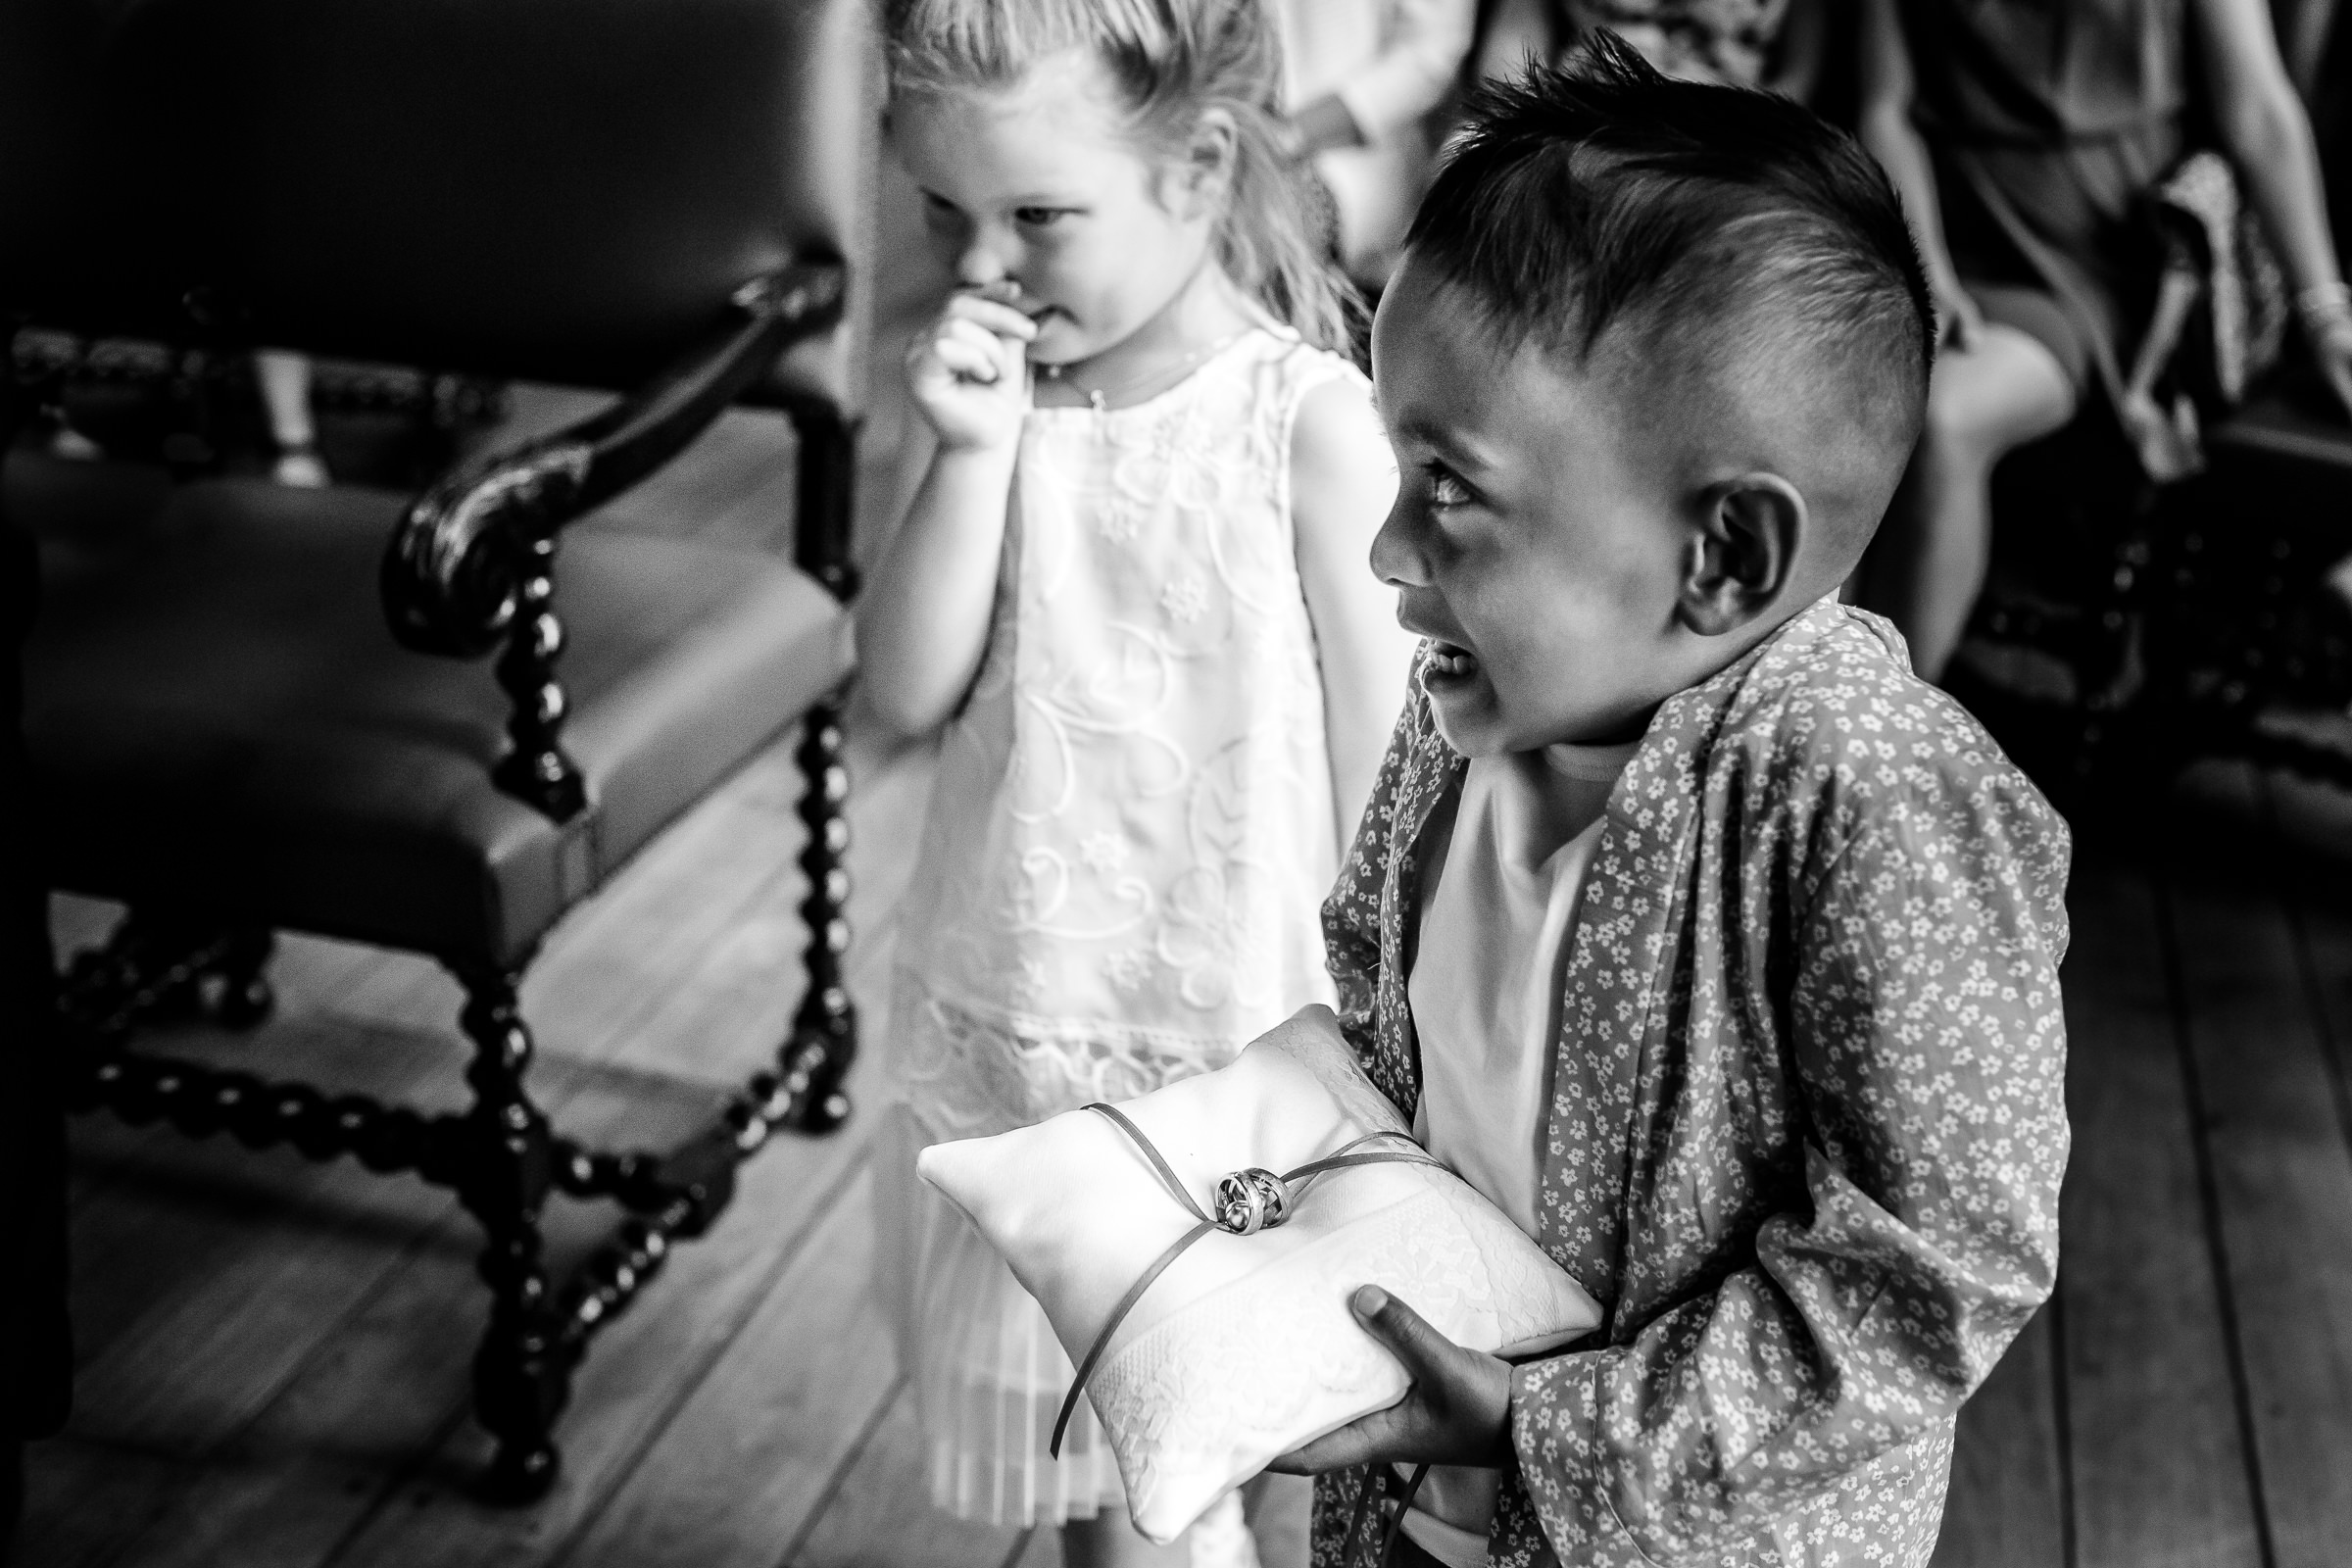 Cute flower girl and ring bearer - photo by Peter van der Lingen Wedding Photography